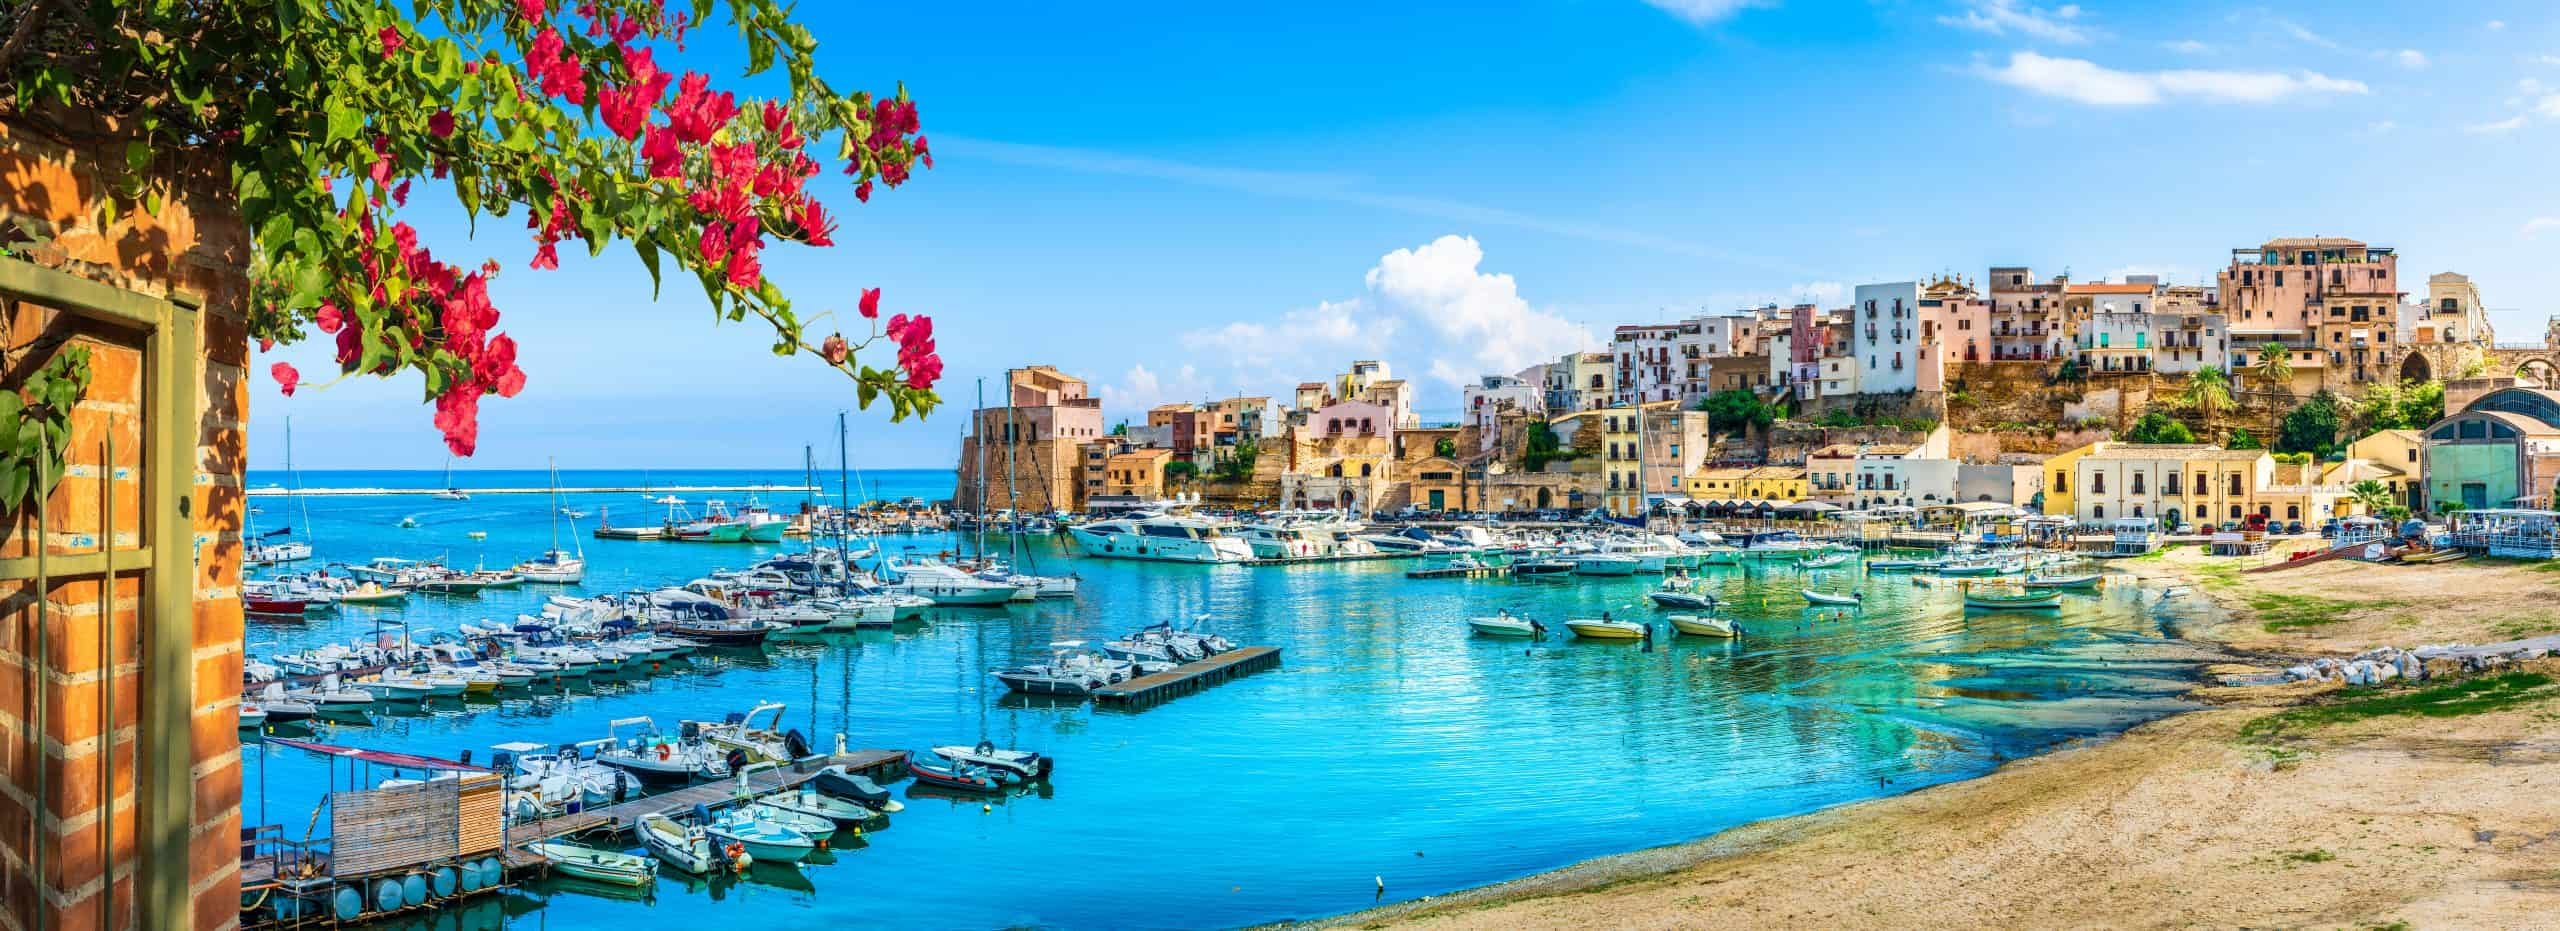 Charming Sicilian town in May, the best time to visit Sicily